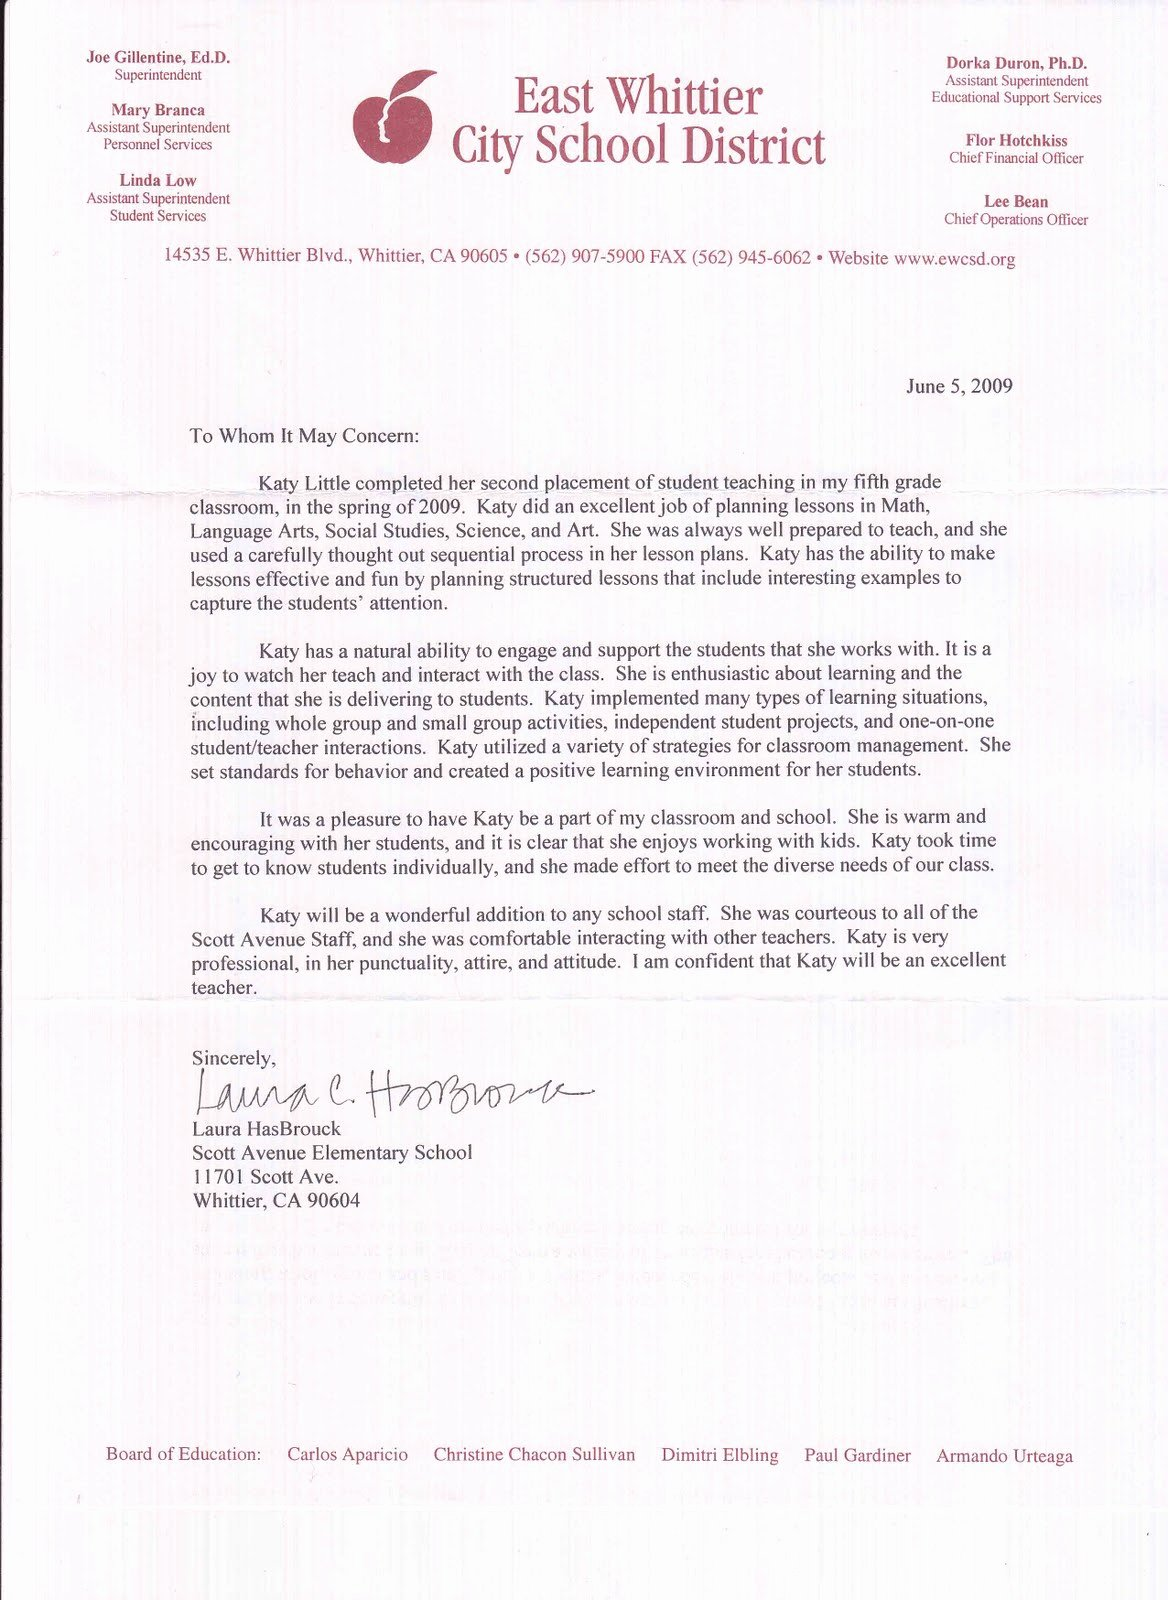 Teaching Letter Of Recommendation Unique Kathryn Little Letters Of Re Mendation Student Teaching